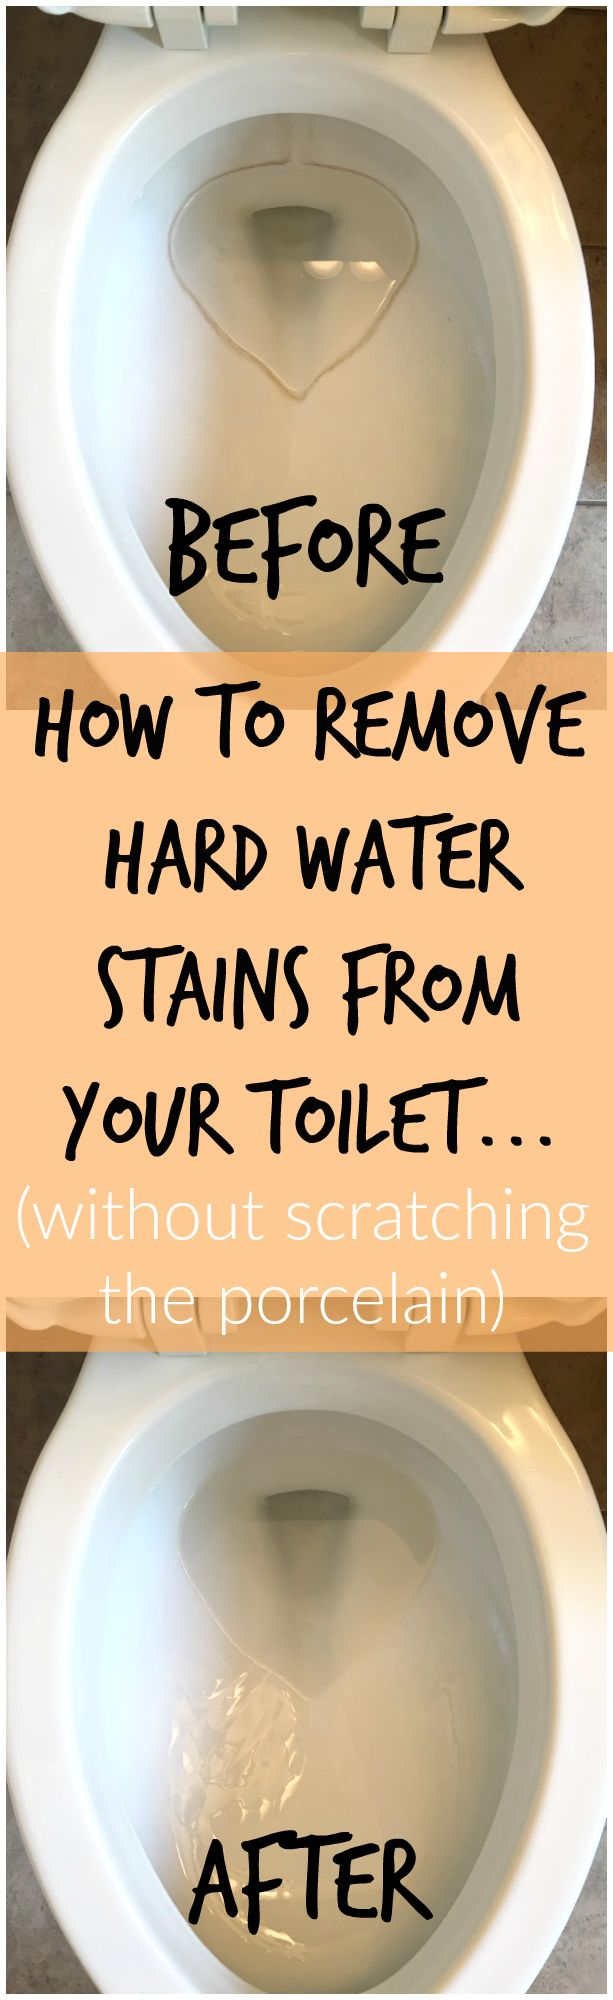 FINALLY! A fast and easy way to remove those impossible hard water stains from toilets (trust me, I tried everything else)